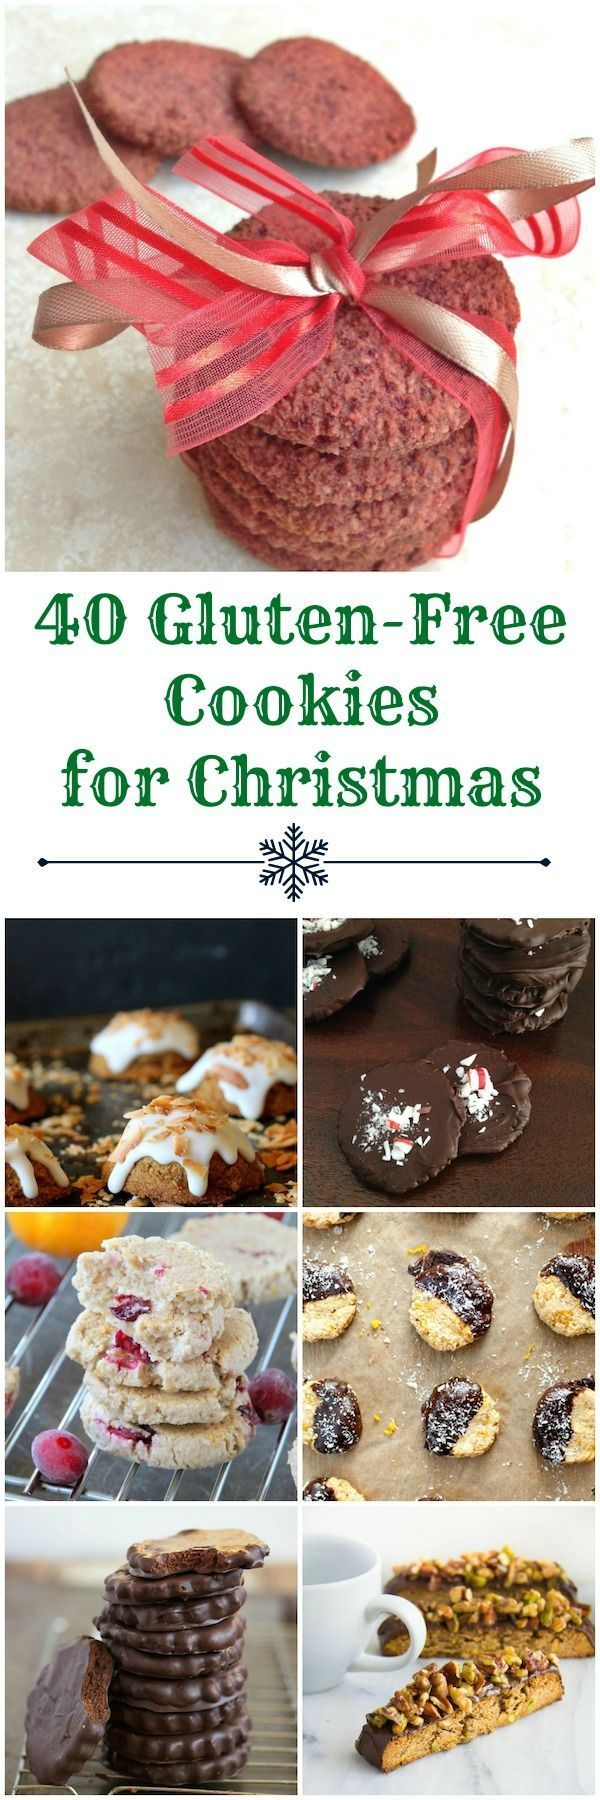 The Top 40 Gluten Free Christmas Cookie Recipes chosen by the registered dietitians of /healthyaperture/